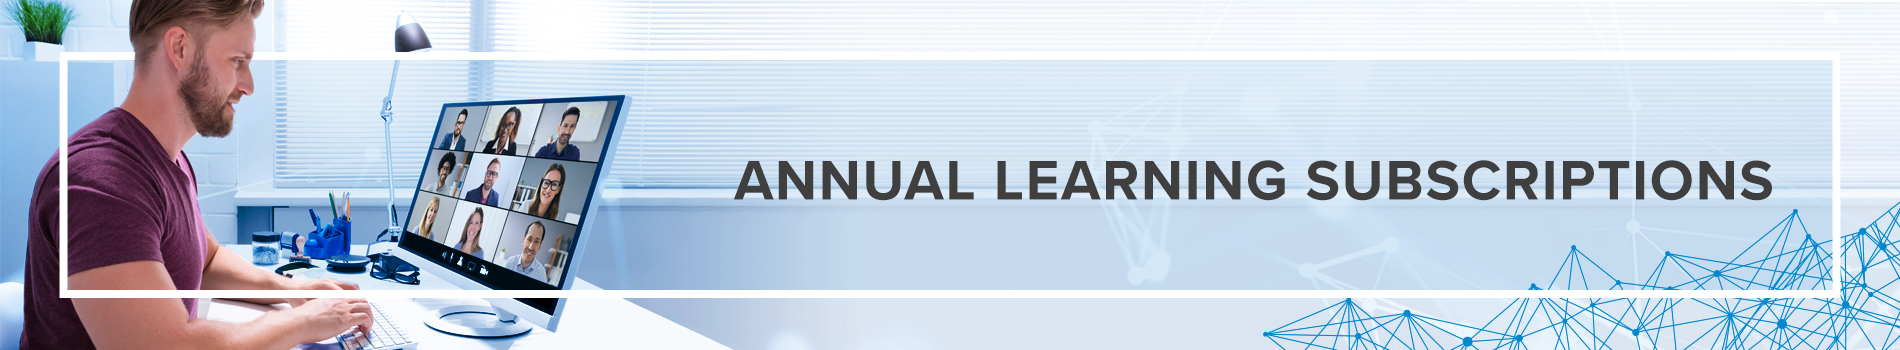 Annual Training Subscriptions